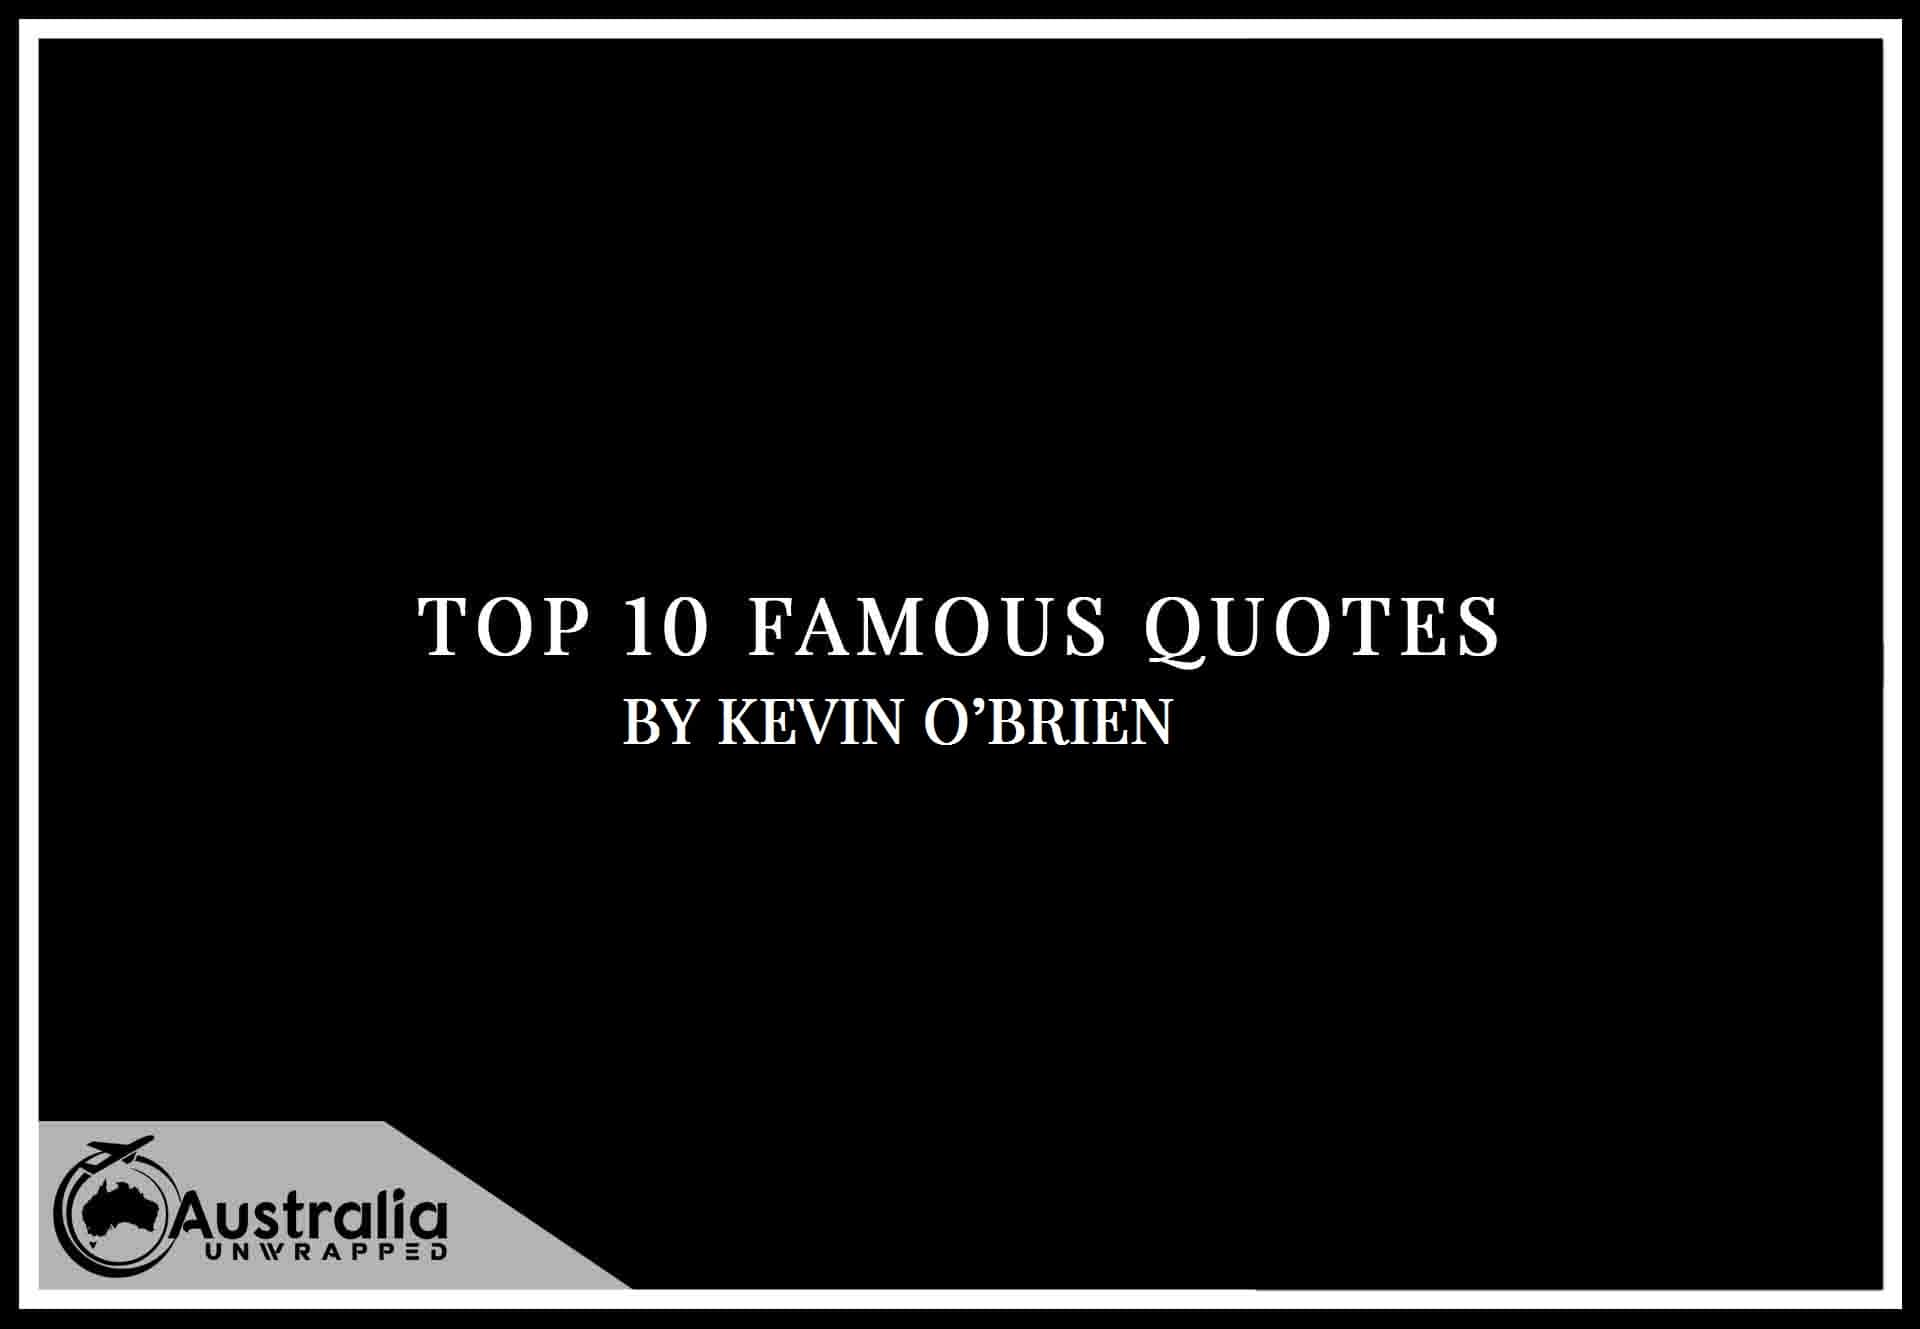 Kevin O'Brien's Top 10 Popular and Famous Quotes